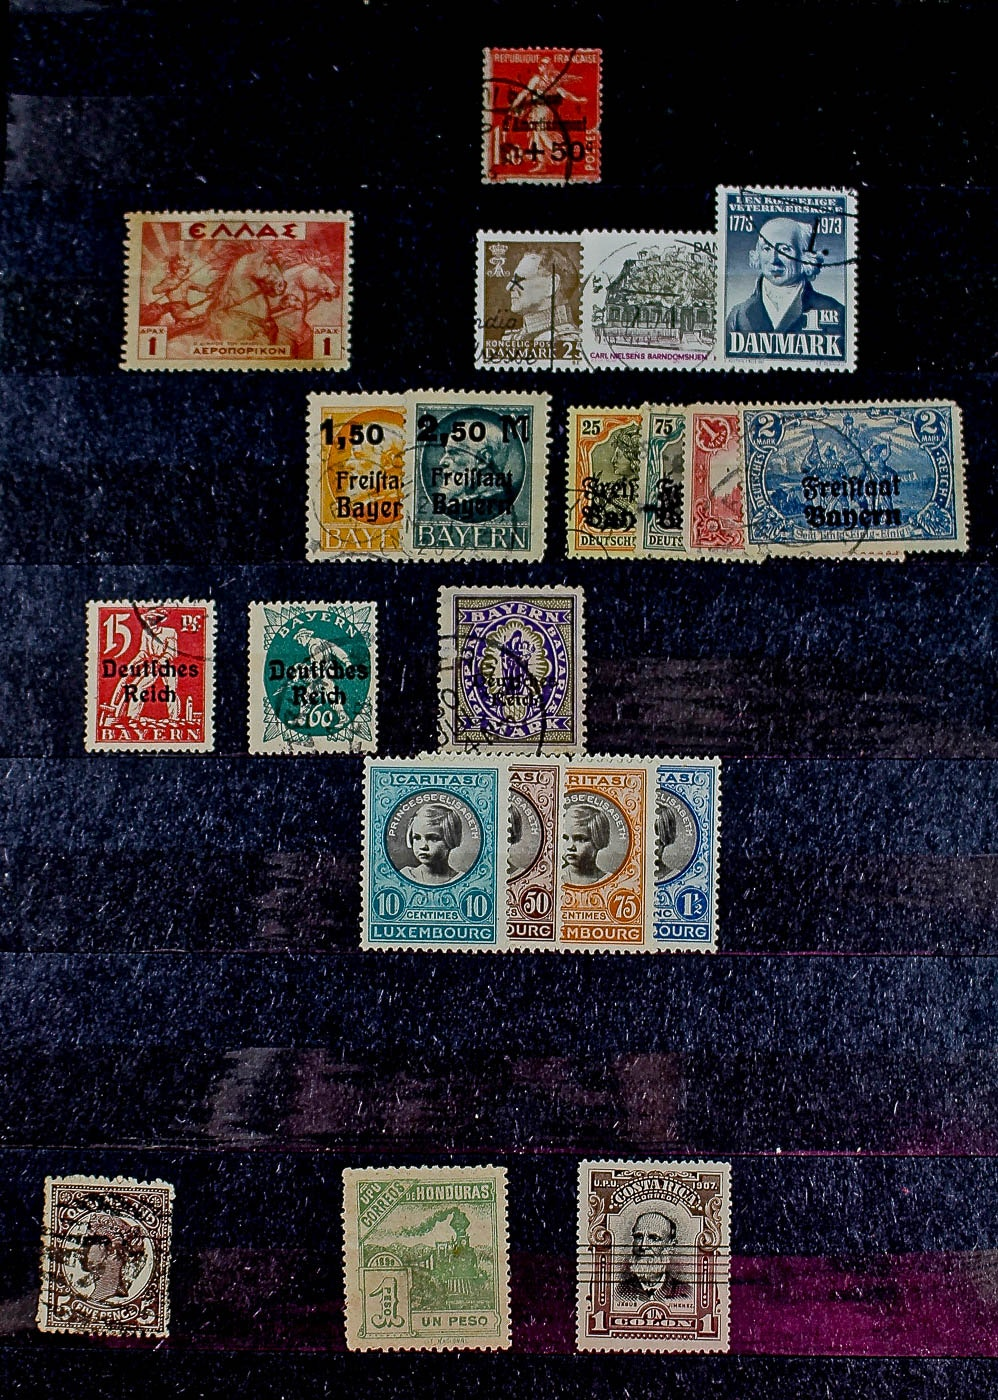 Stamp Dealer's Foreign Postage Stamp Inventory Collection